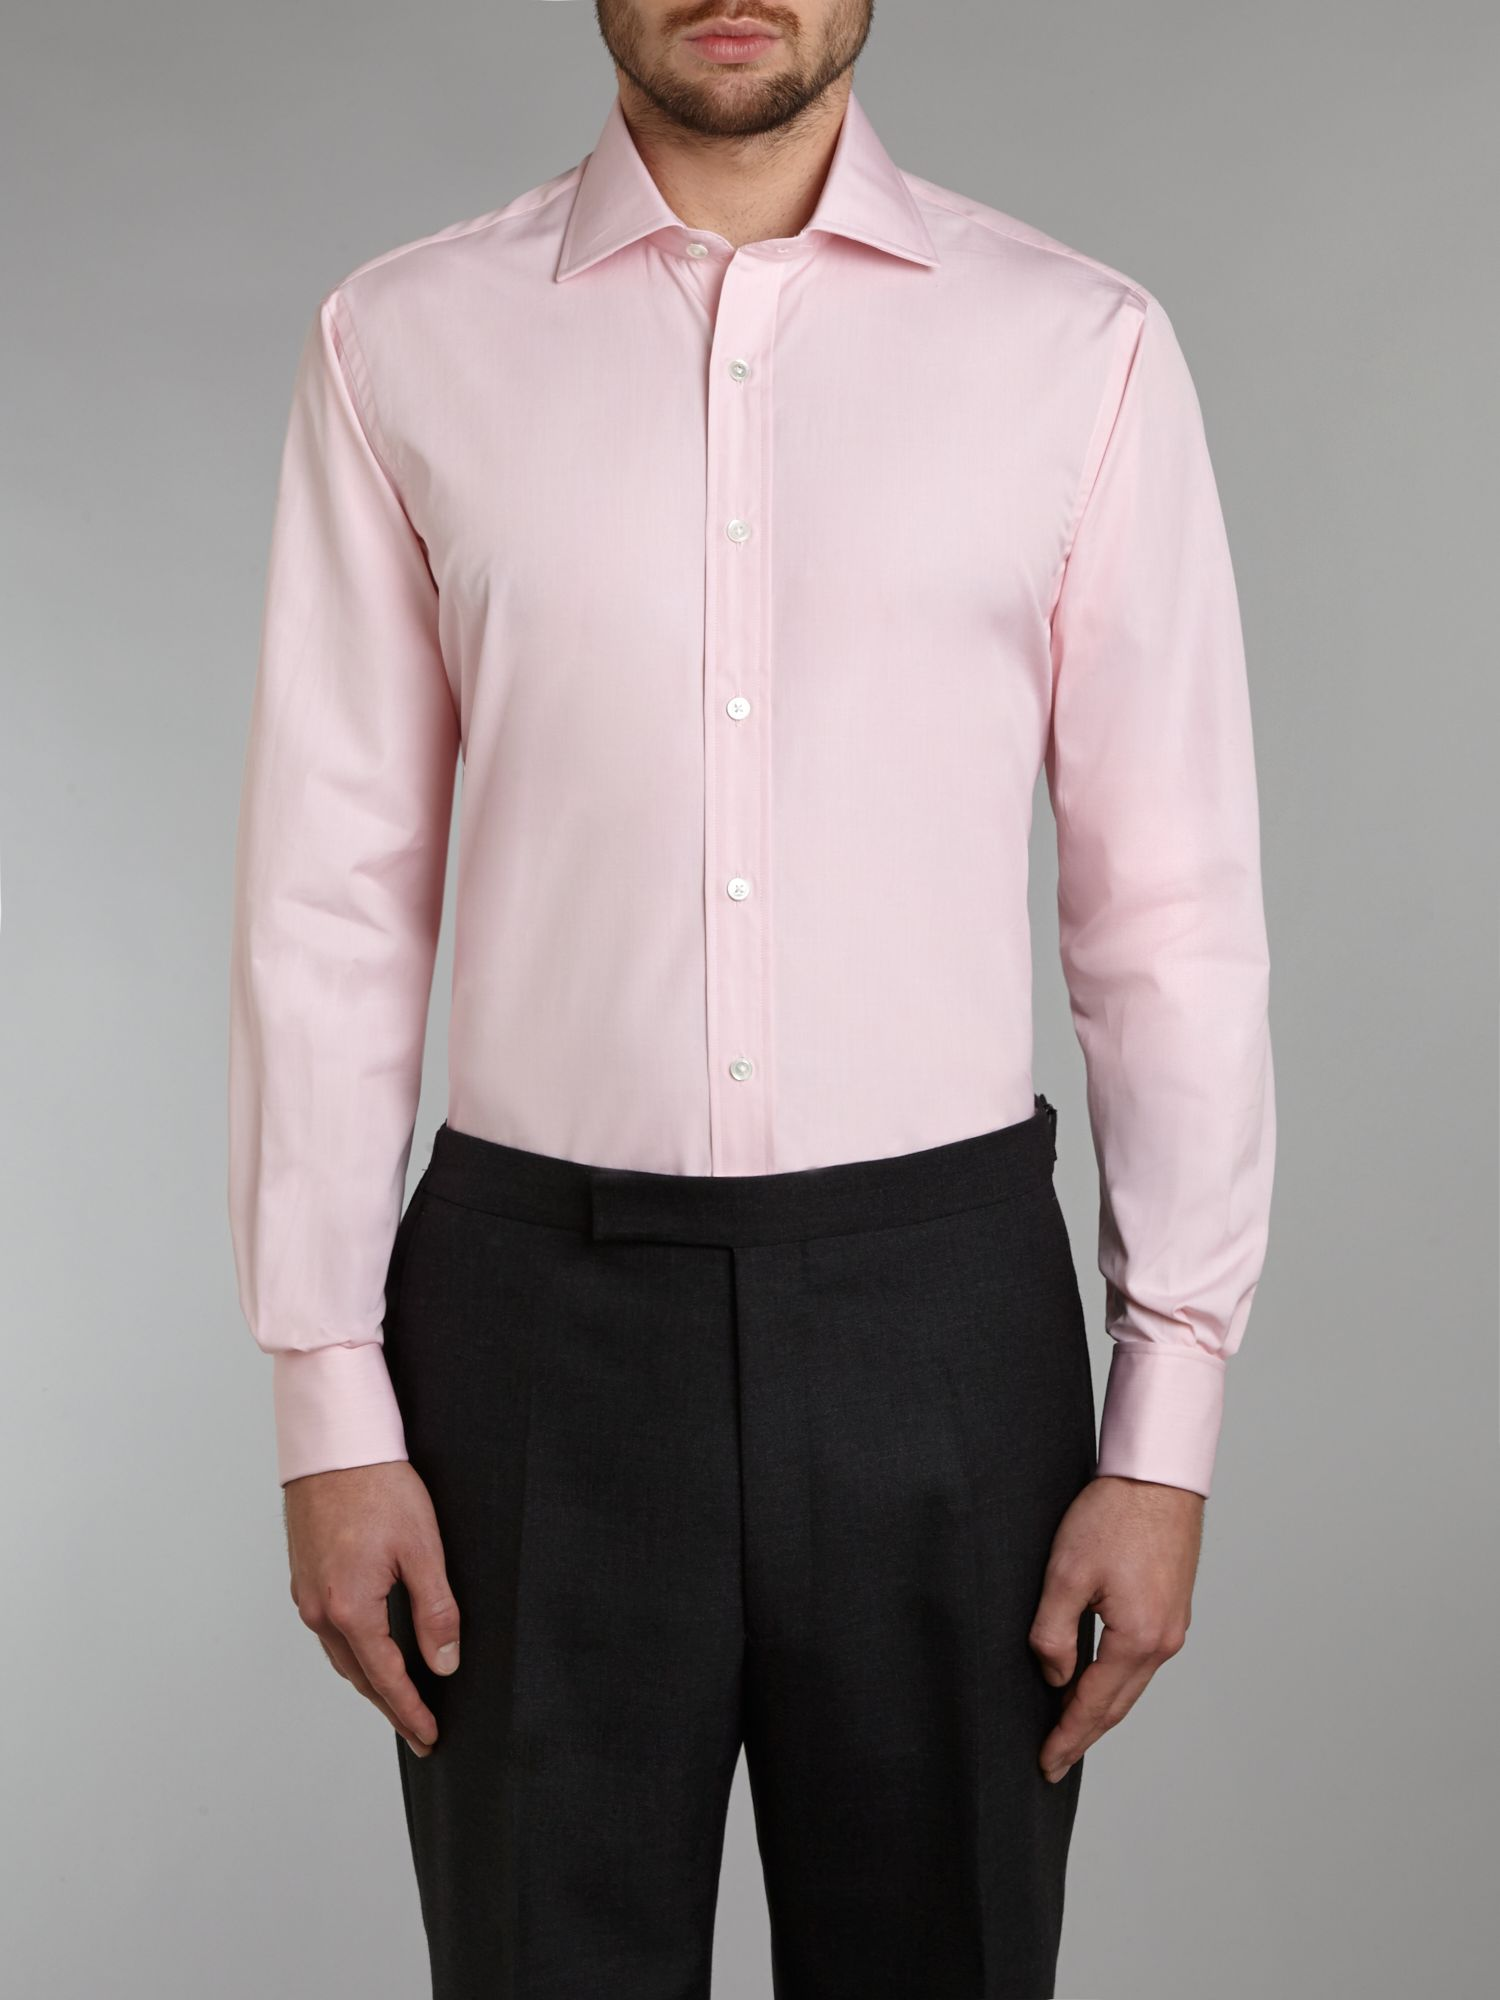 James cutaway collar shirt